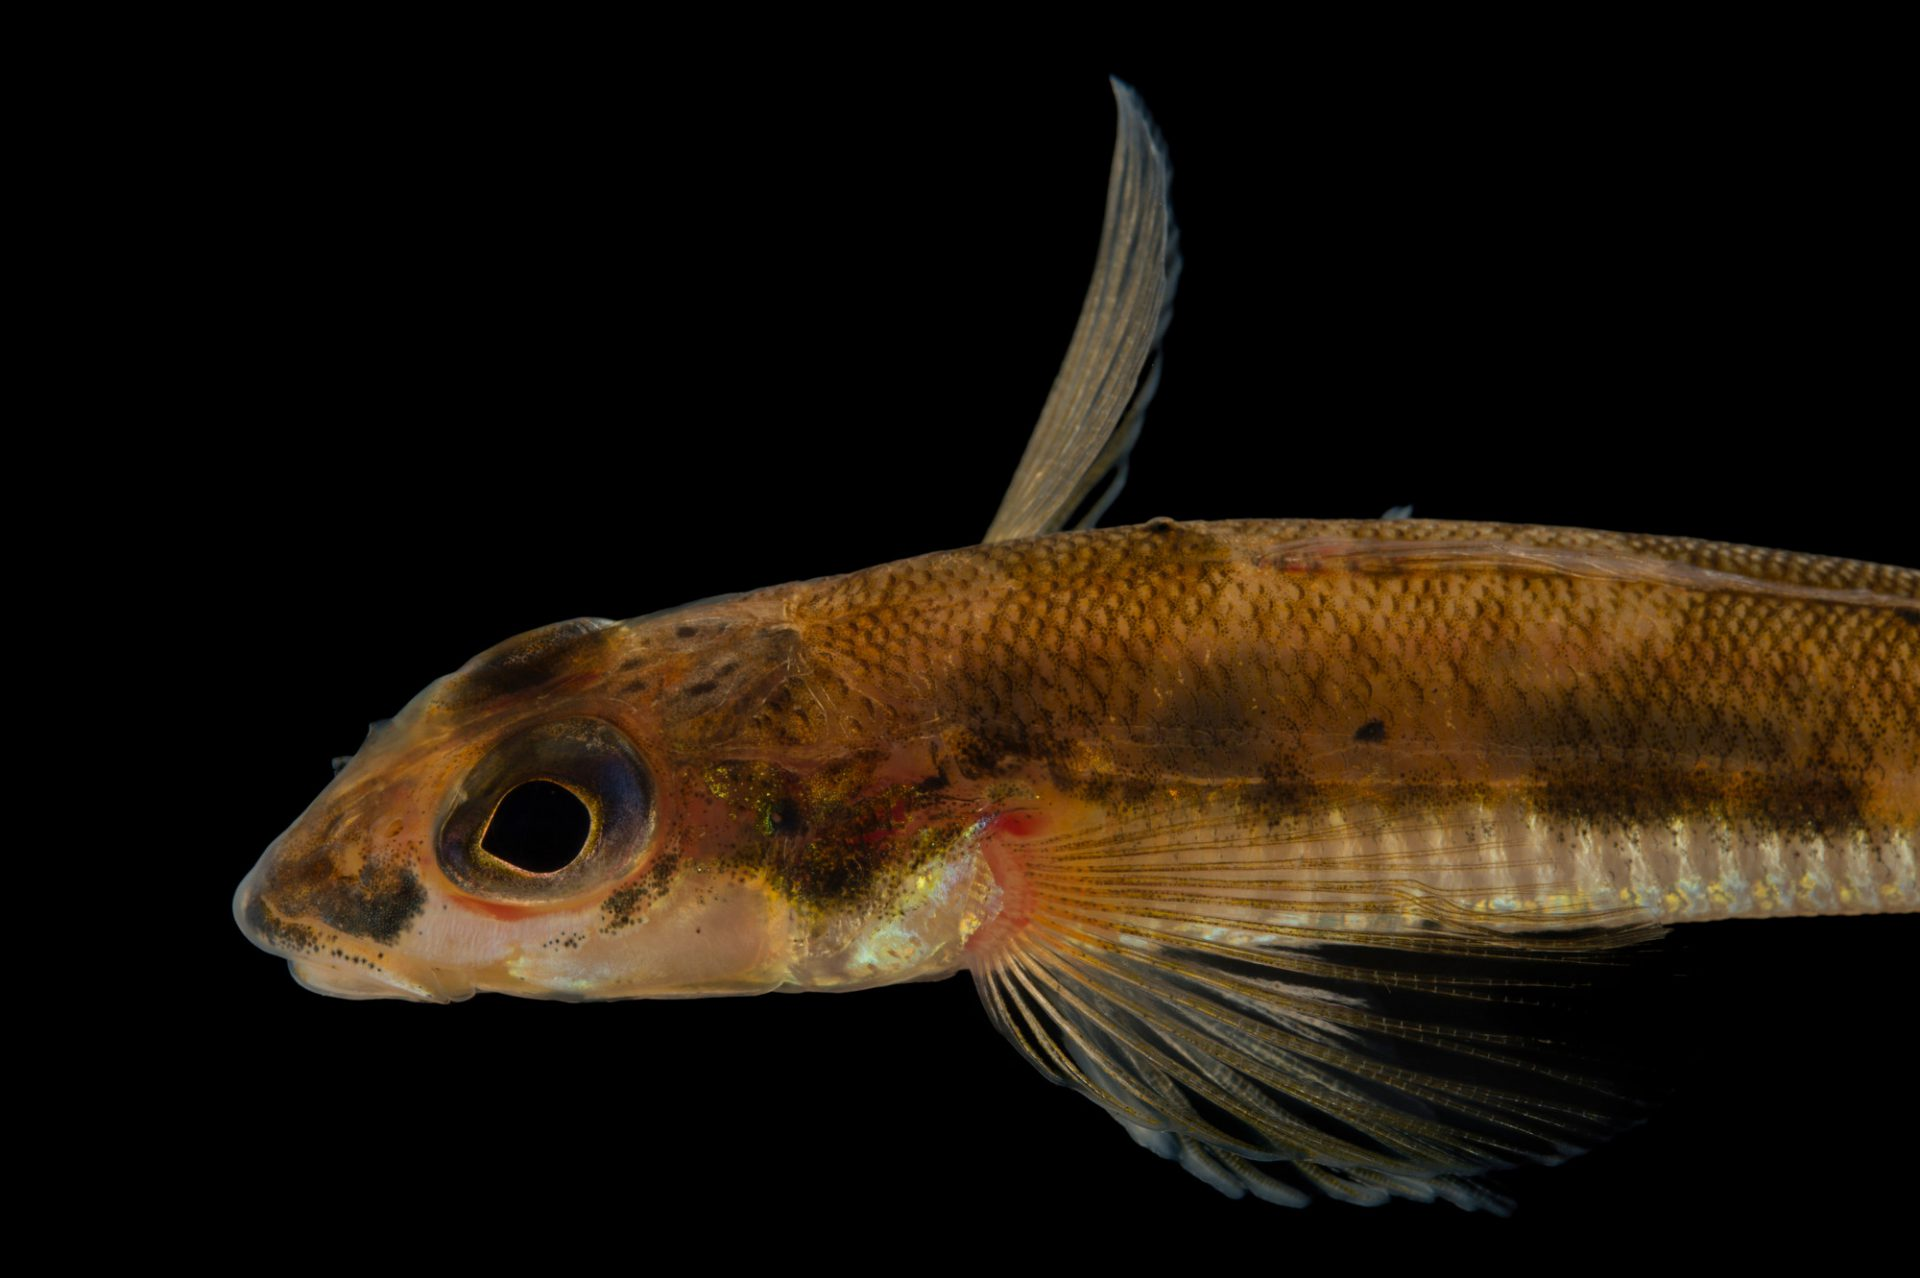 A diamond darter (Crystallaria cincotta), a critically endangered fish from the southeastern U.S. at Conservation Fisheries.